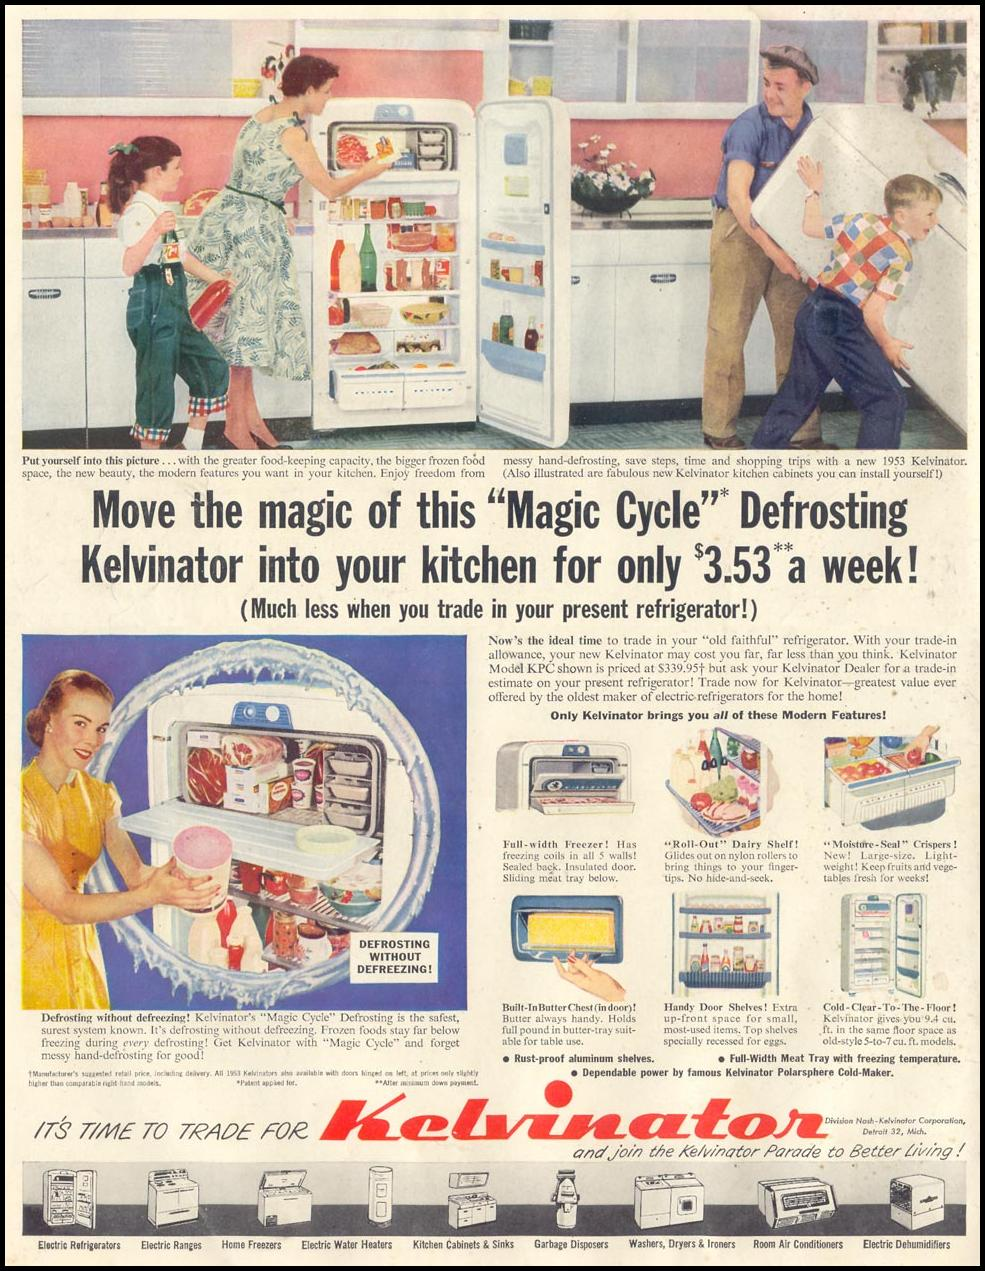 MOVE THE MAGIC OF THIS MAGIC CYCLE DEFROSTING KELVINATOR